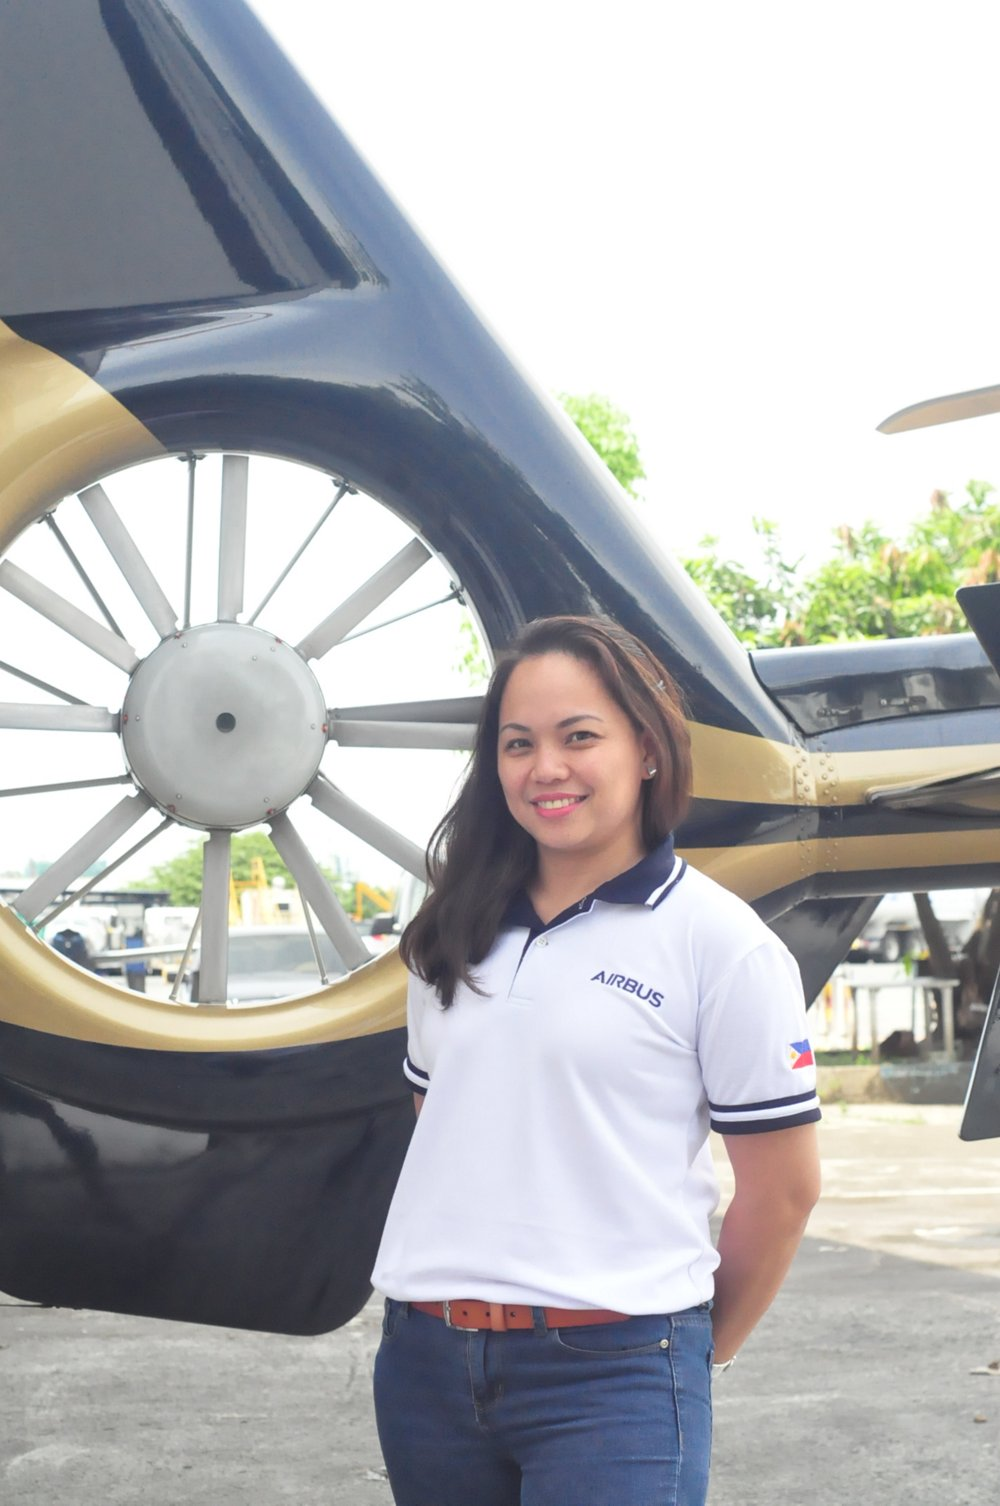 Melanie Tolentino joined the Airbus right after she completed her studies, and has been working for Airbus Helicopters in the Philippines for more than 20 years now.